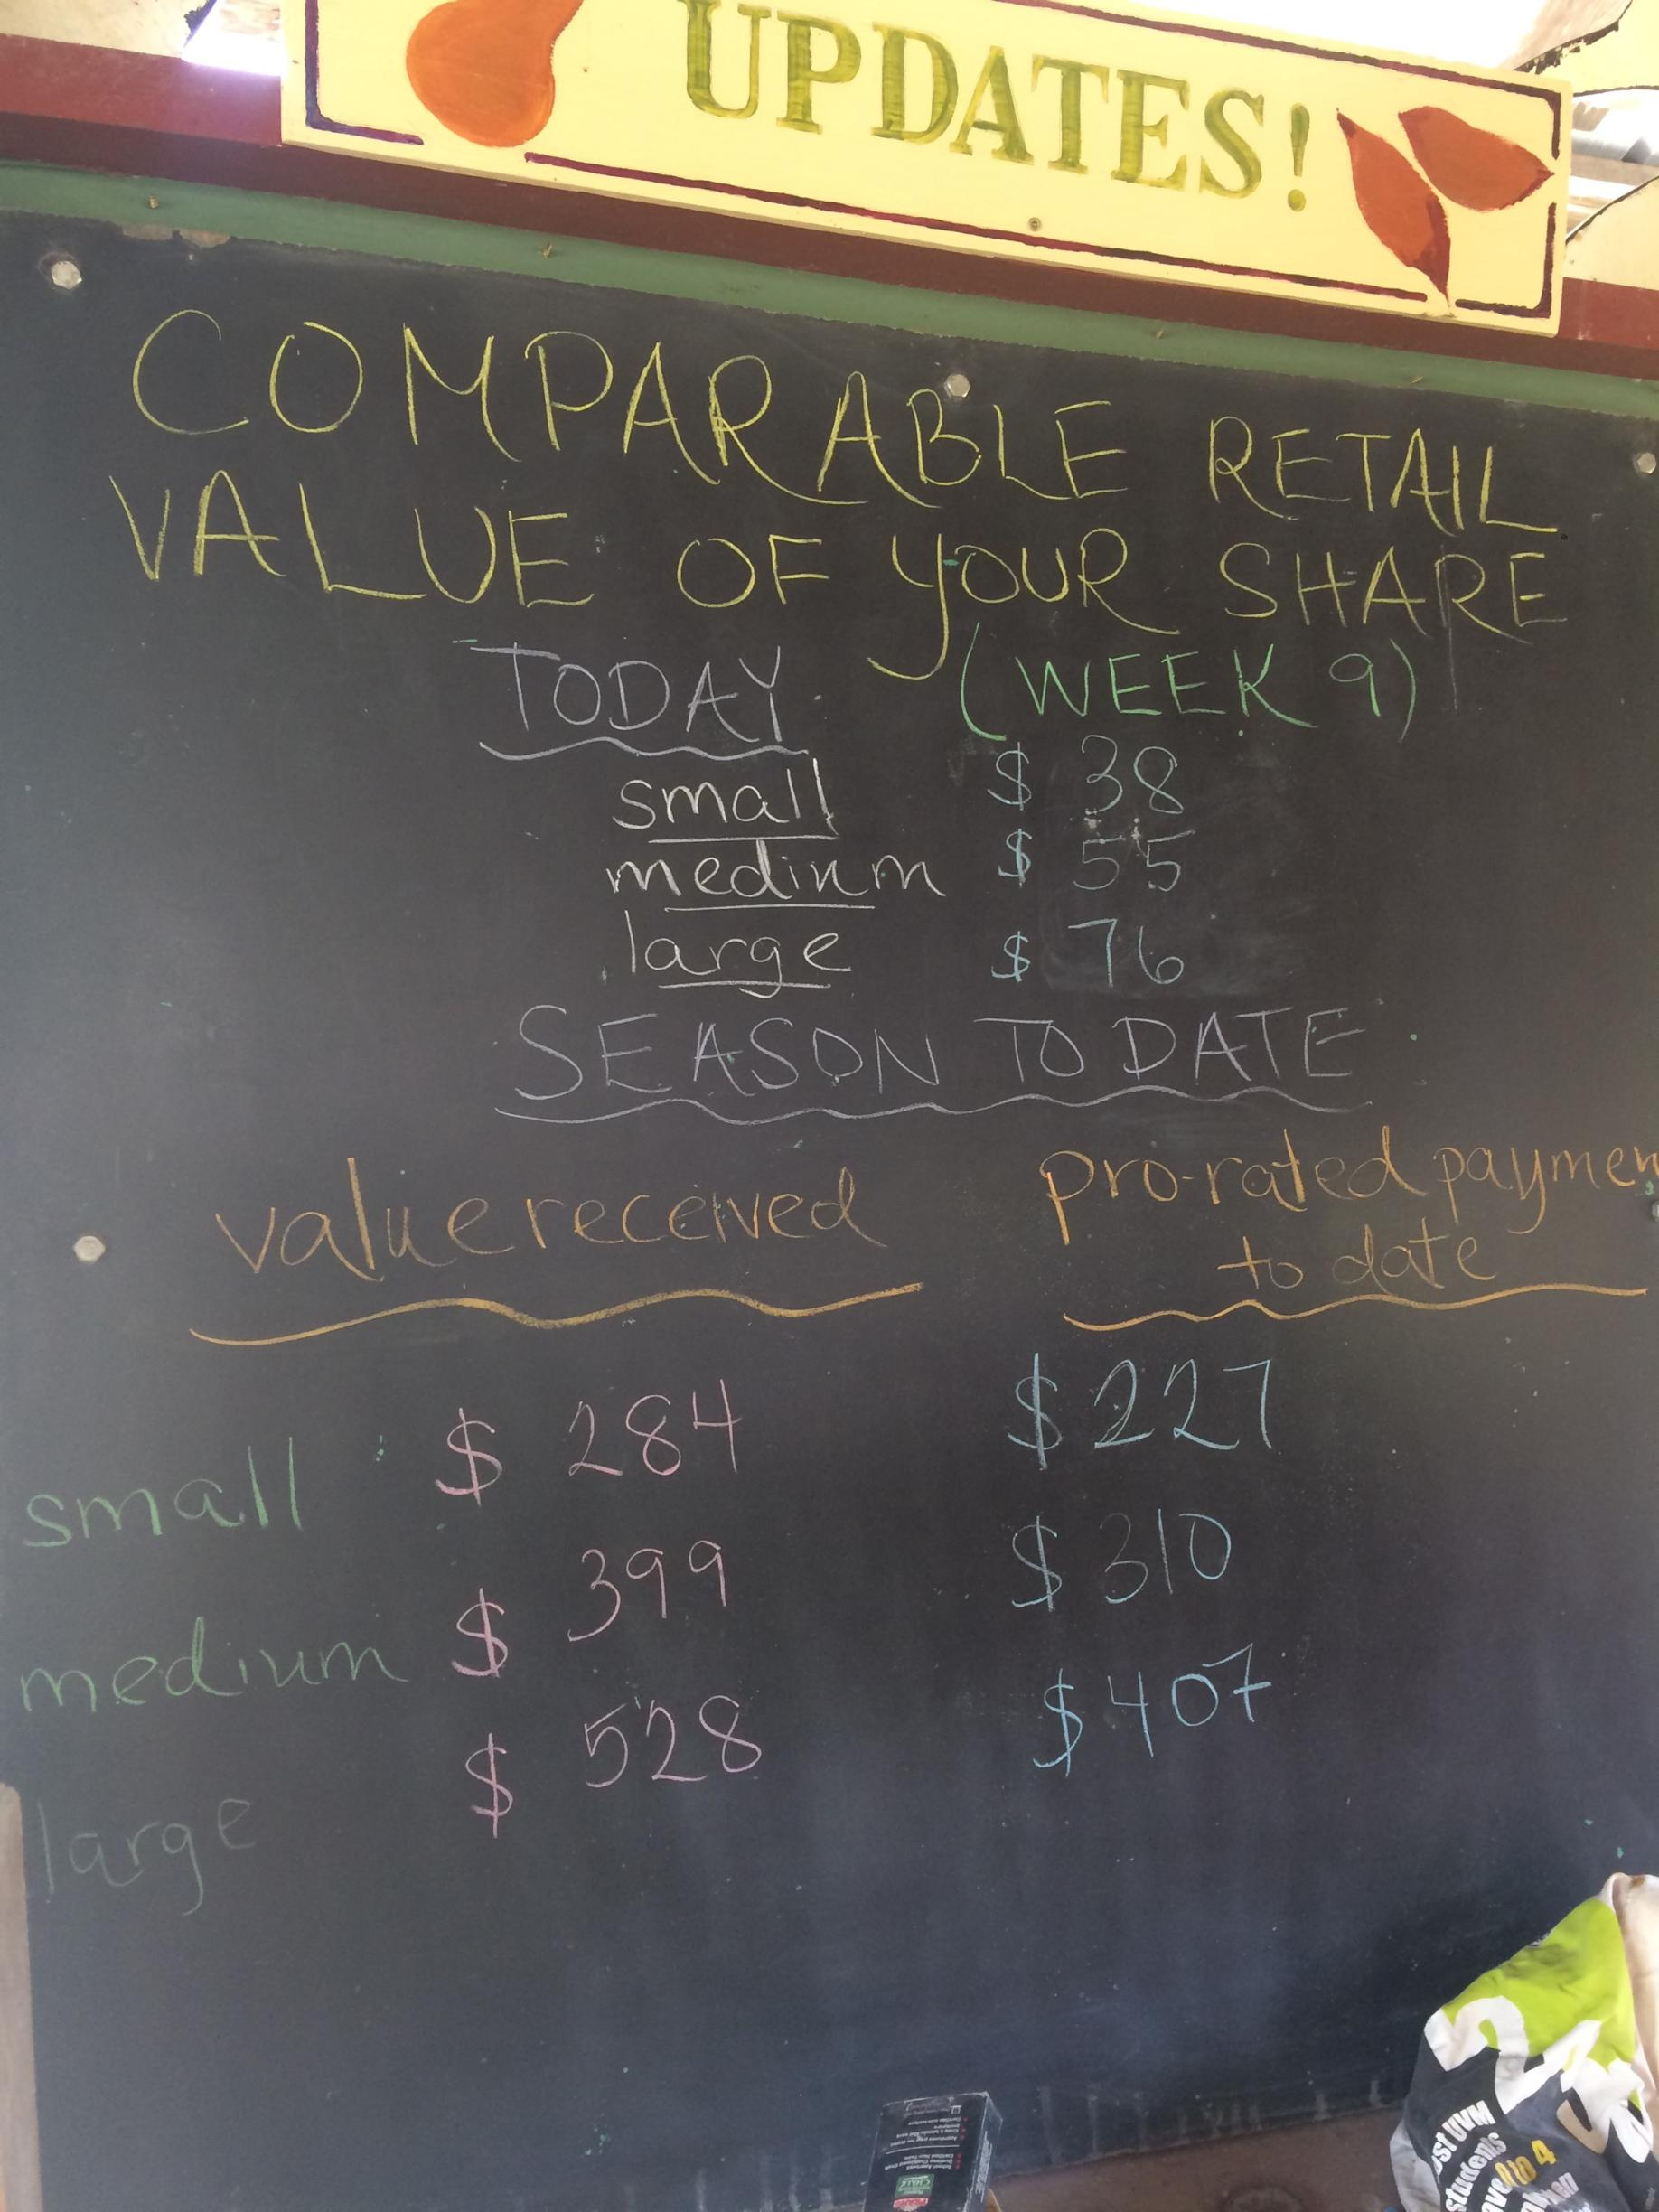 Week 9 Share Value